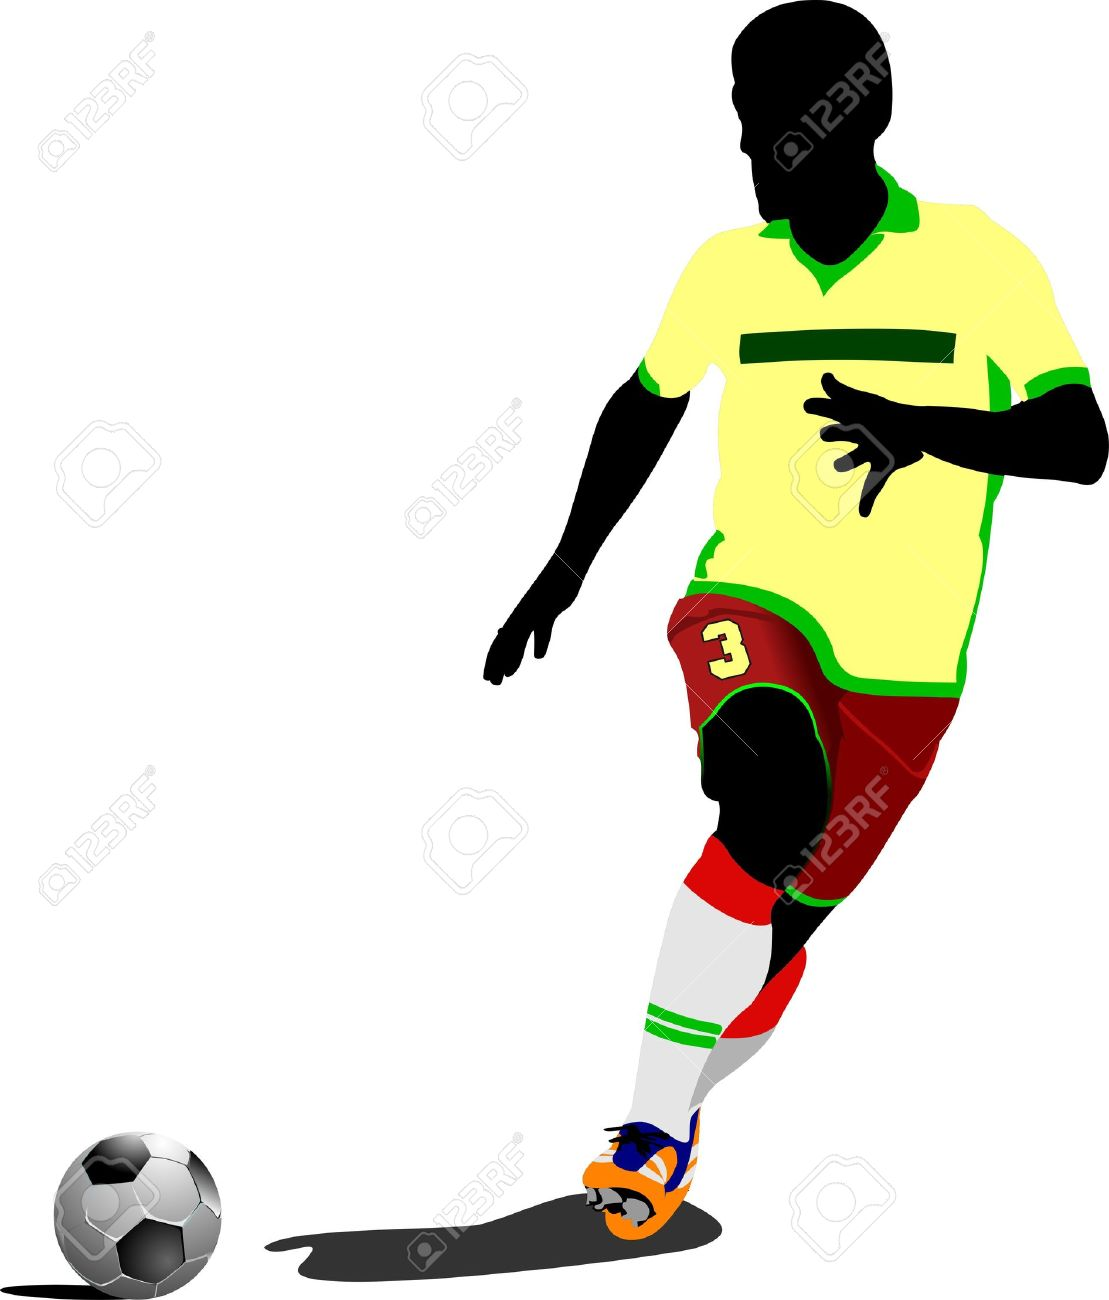 Football  soccer  players  Colored Vector illustration for designers Stock Vector - 15127763